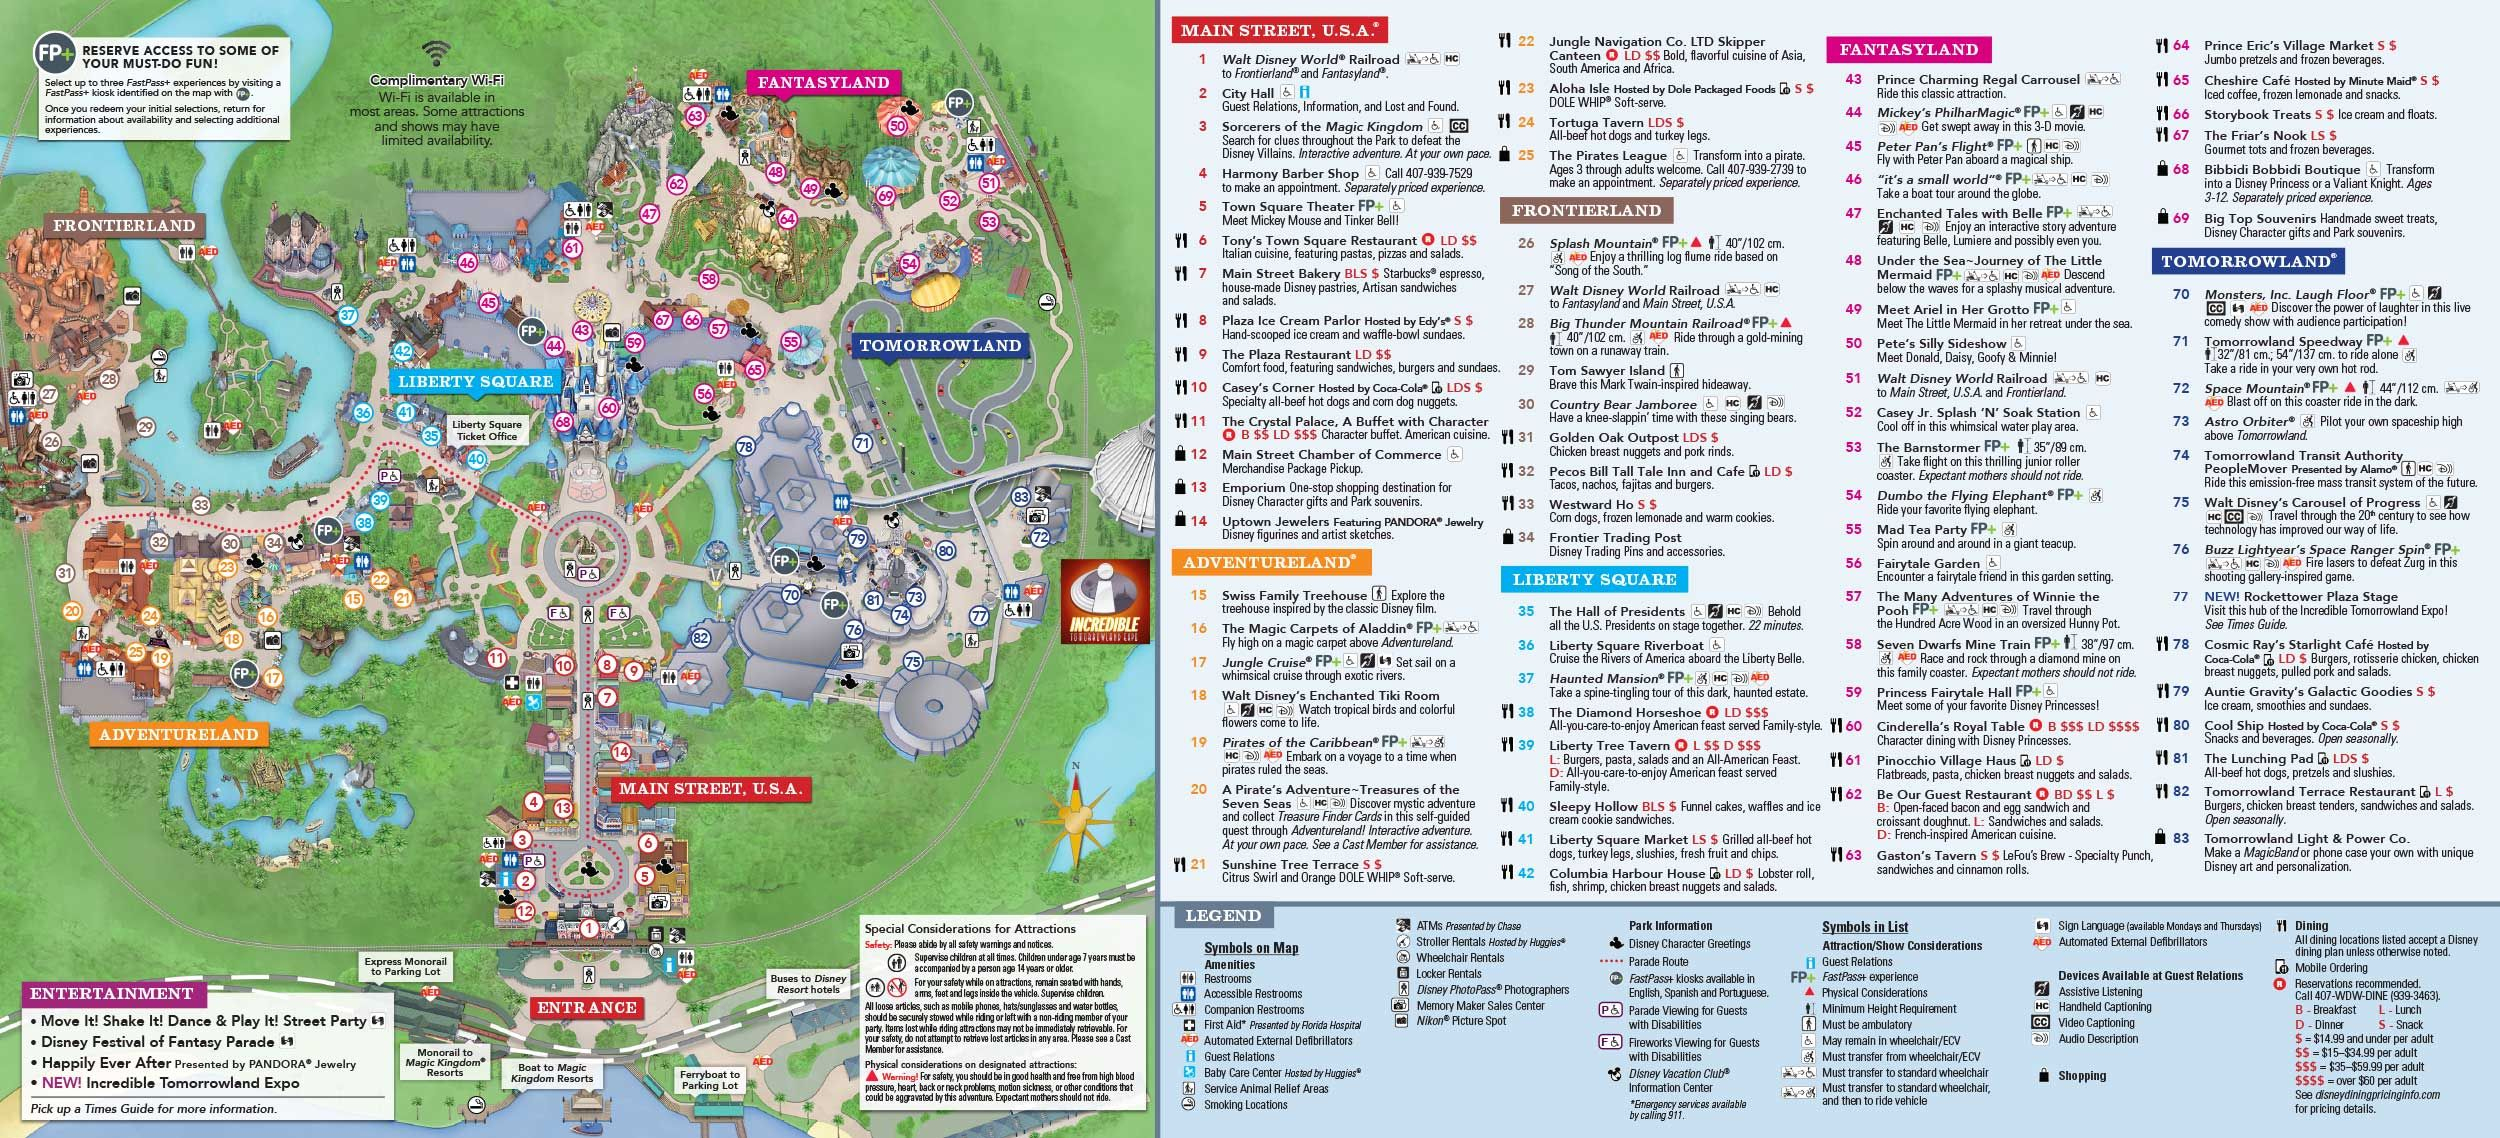 Magic Kingdom Park Map | Disney In 2019 | Pinterest | Disney, Magic - Magic Kingdom Orlando Florida Map